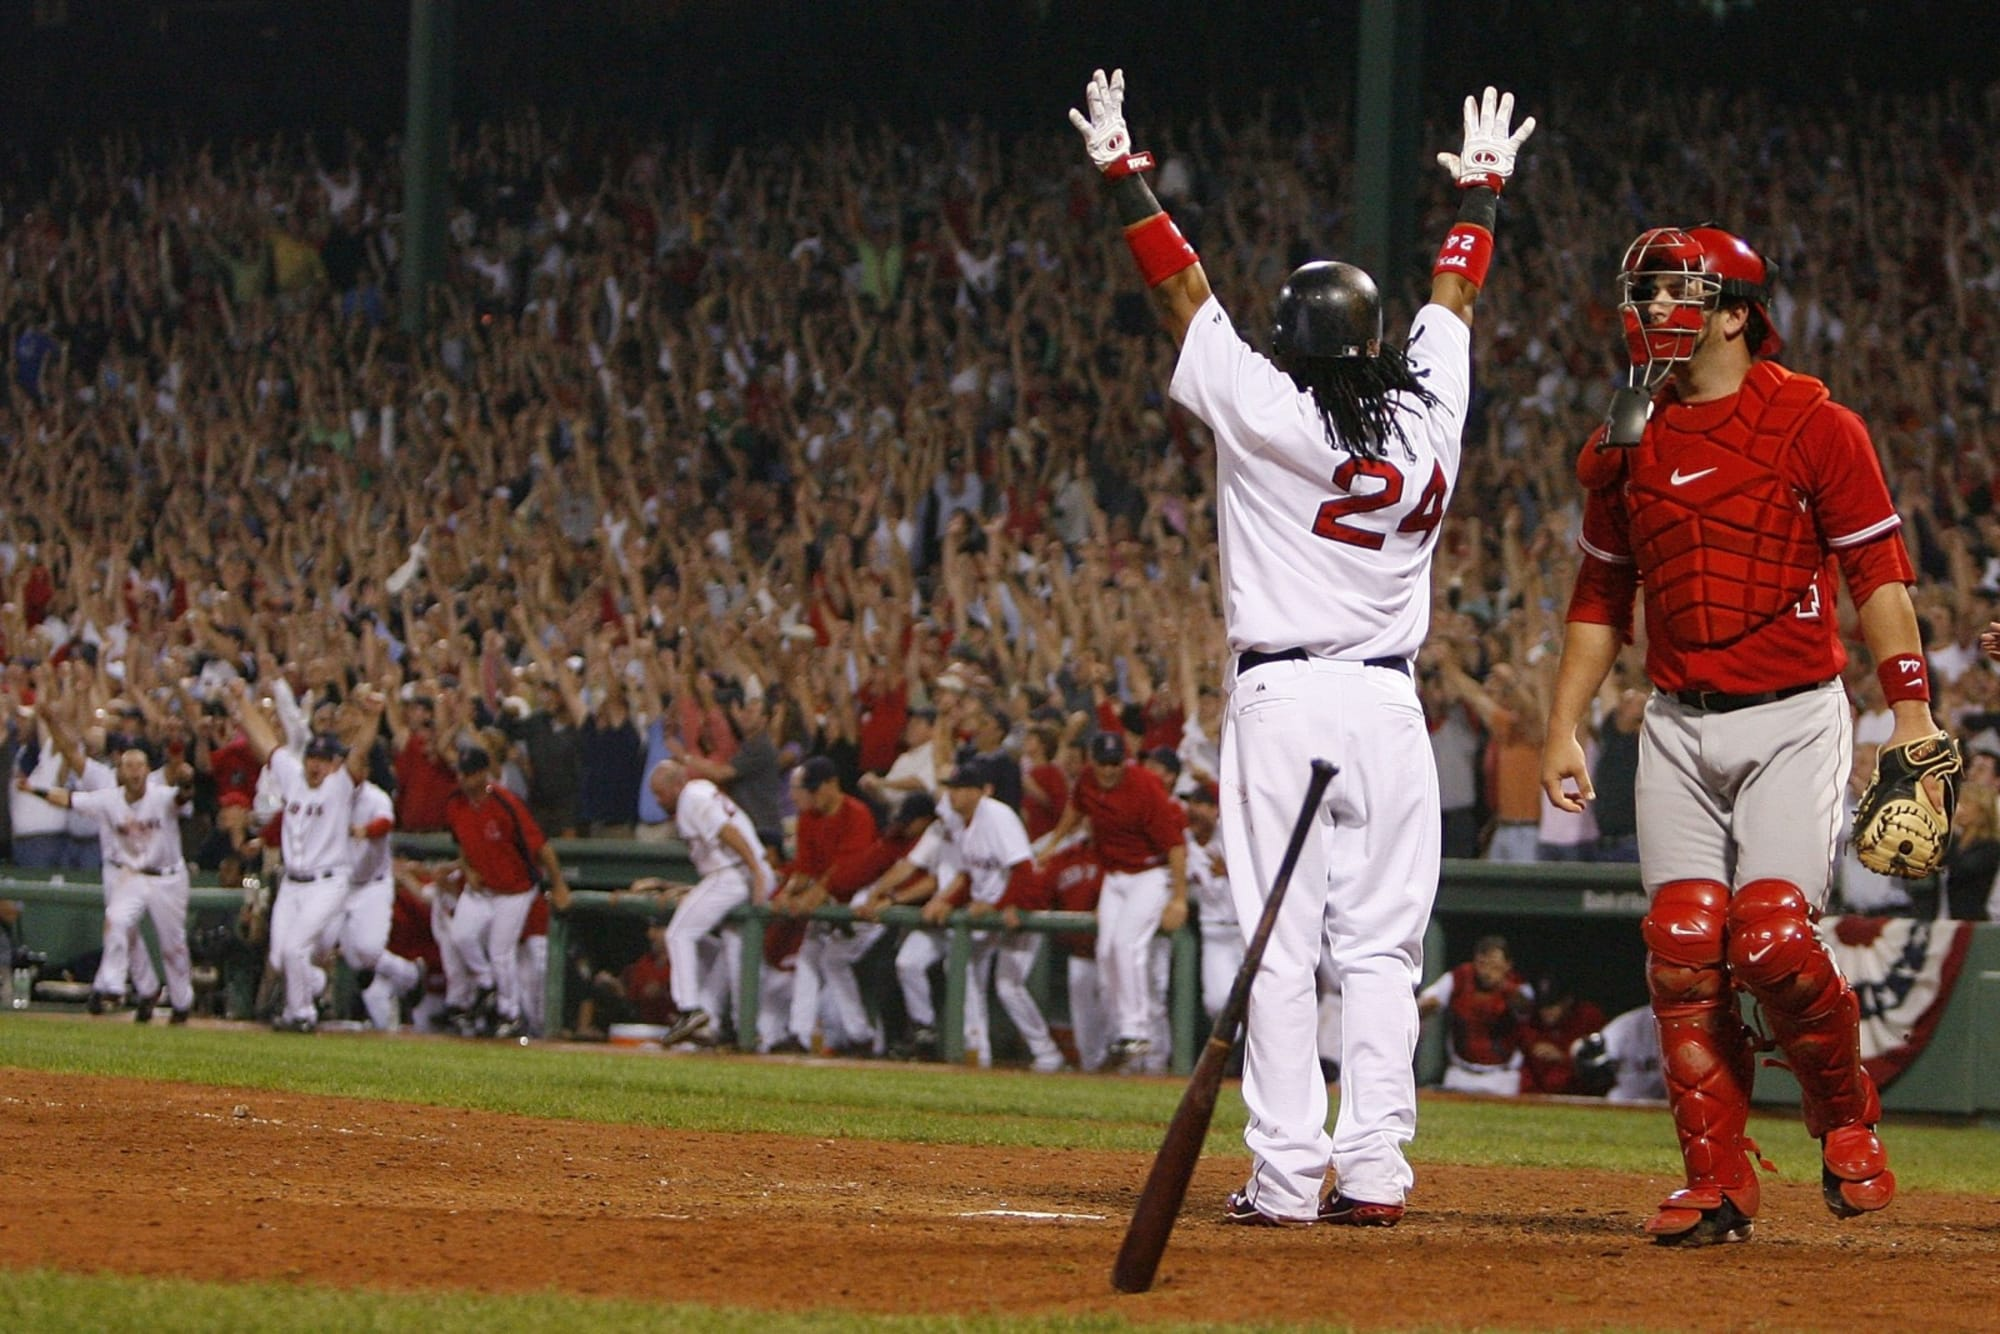 Red Sox Memories: Manny Ramirez hits walk-off home run in 2007 ALDS